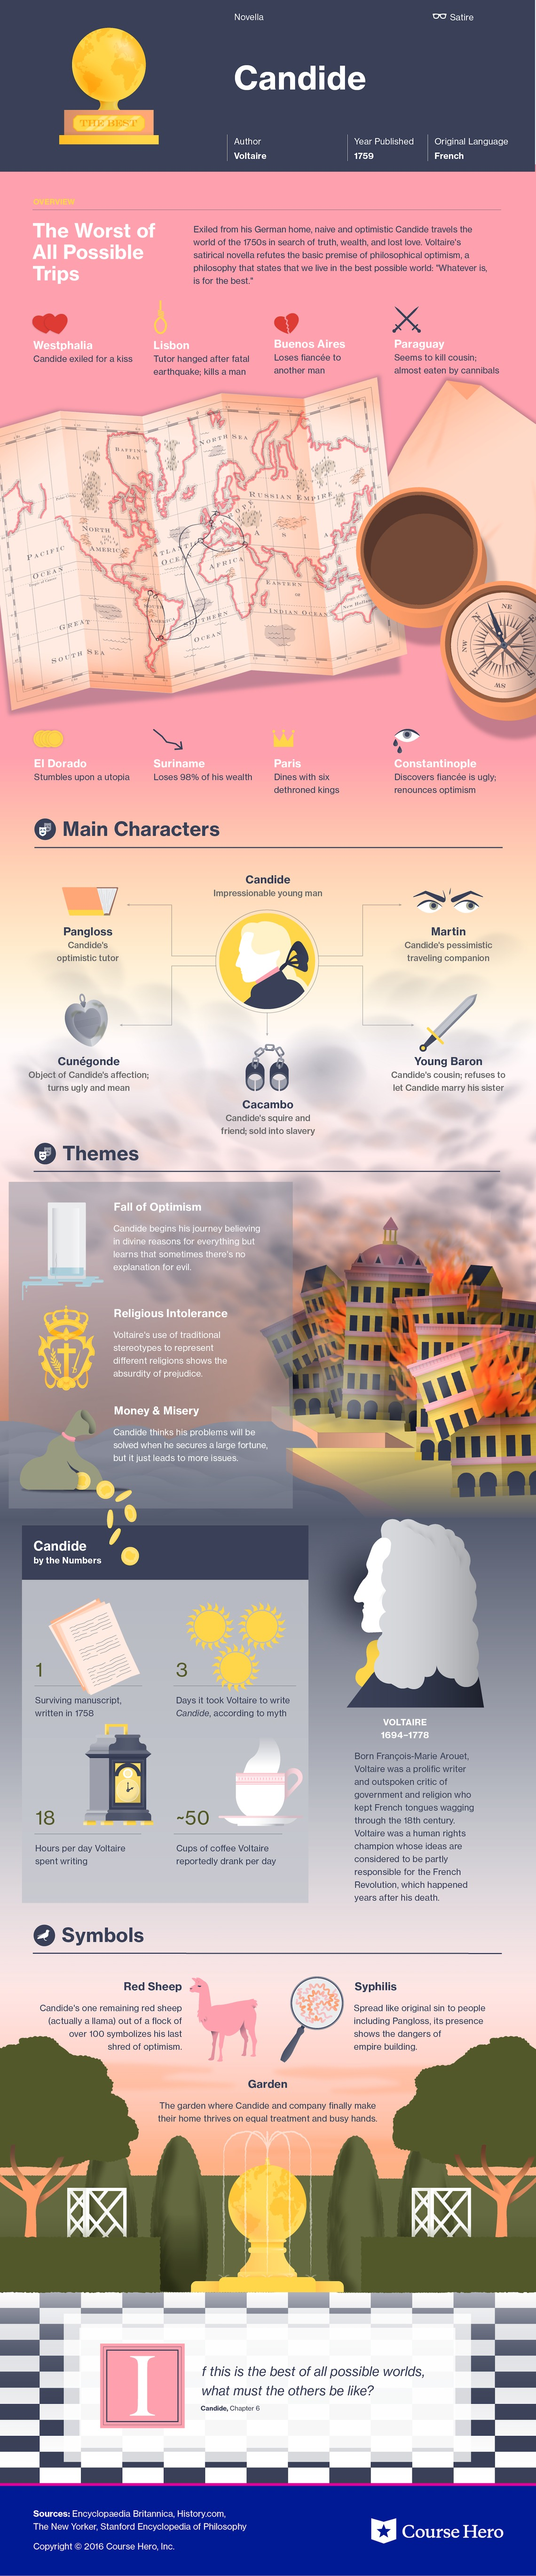 Candide infographic